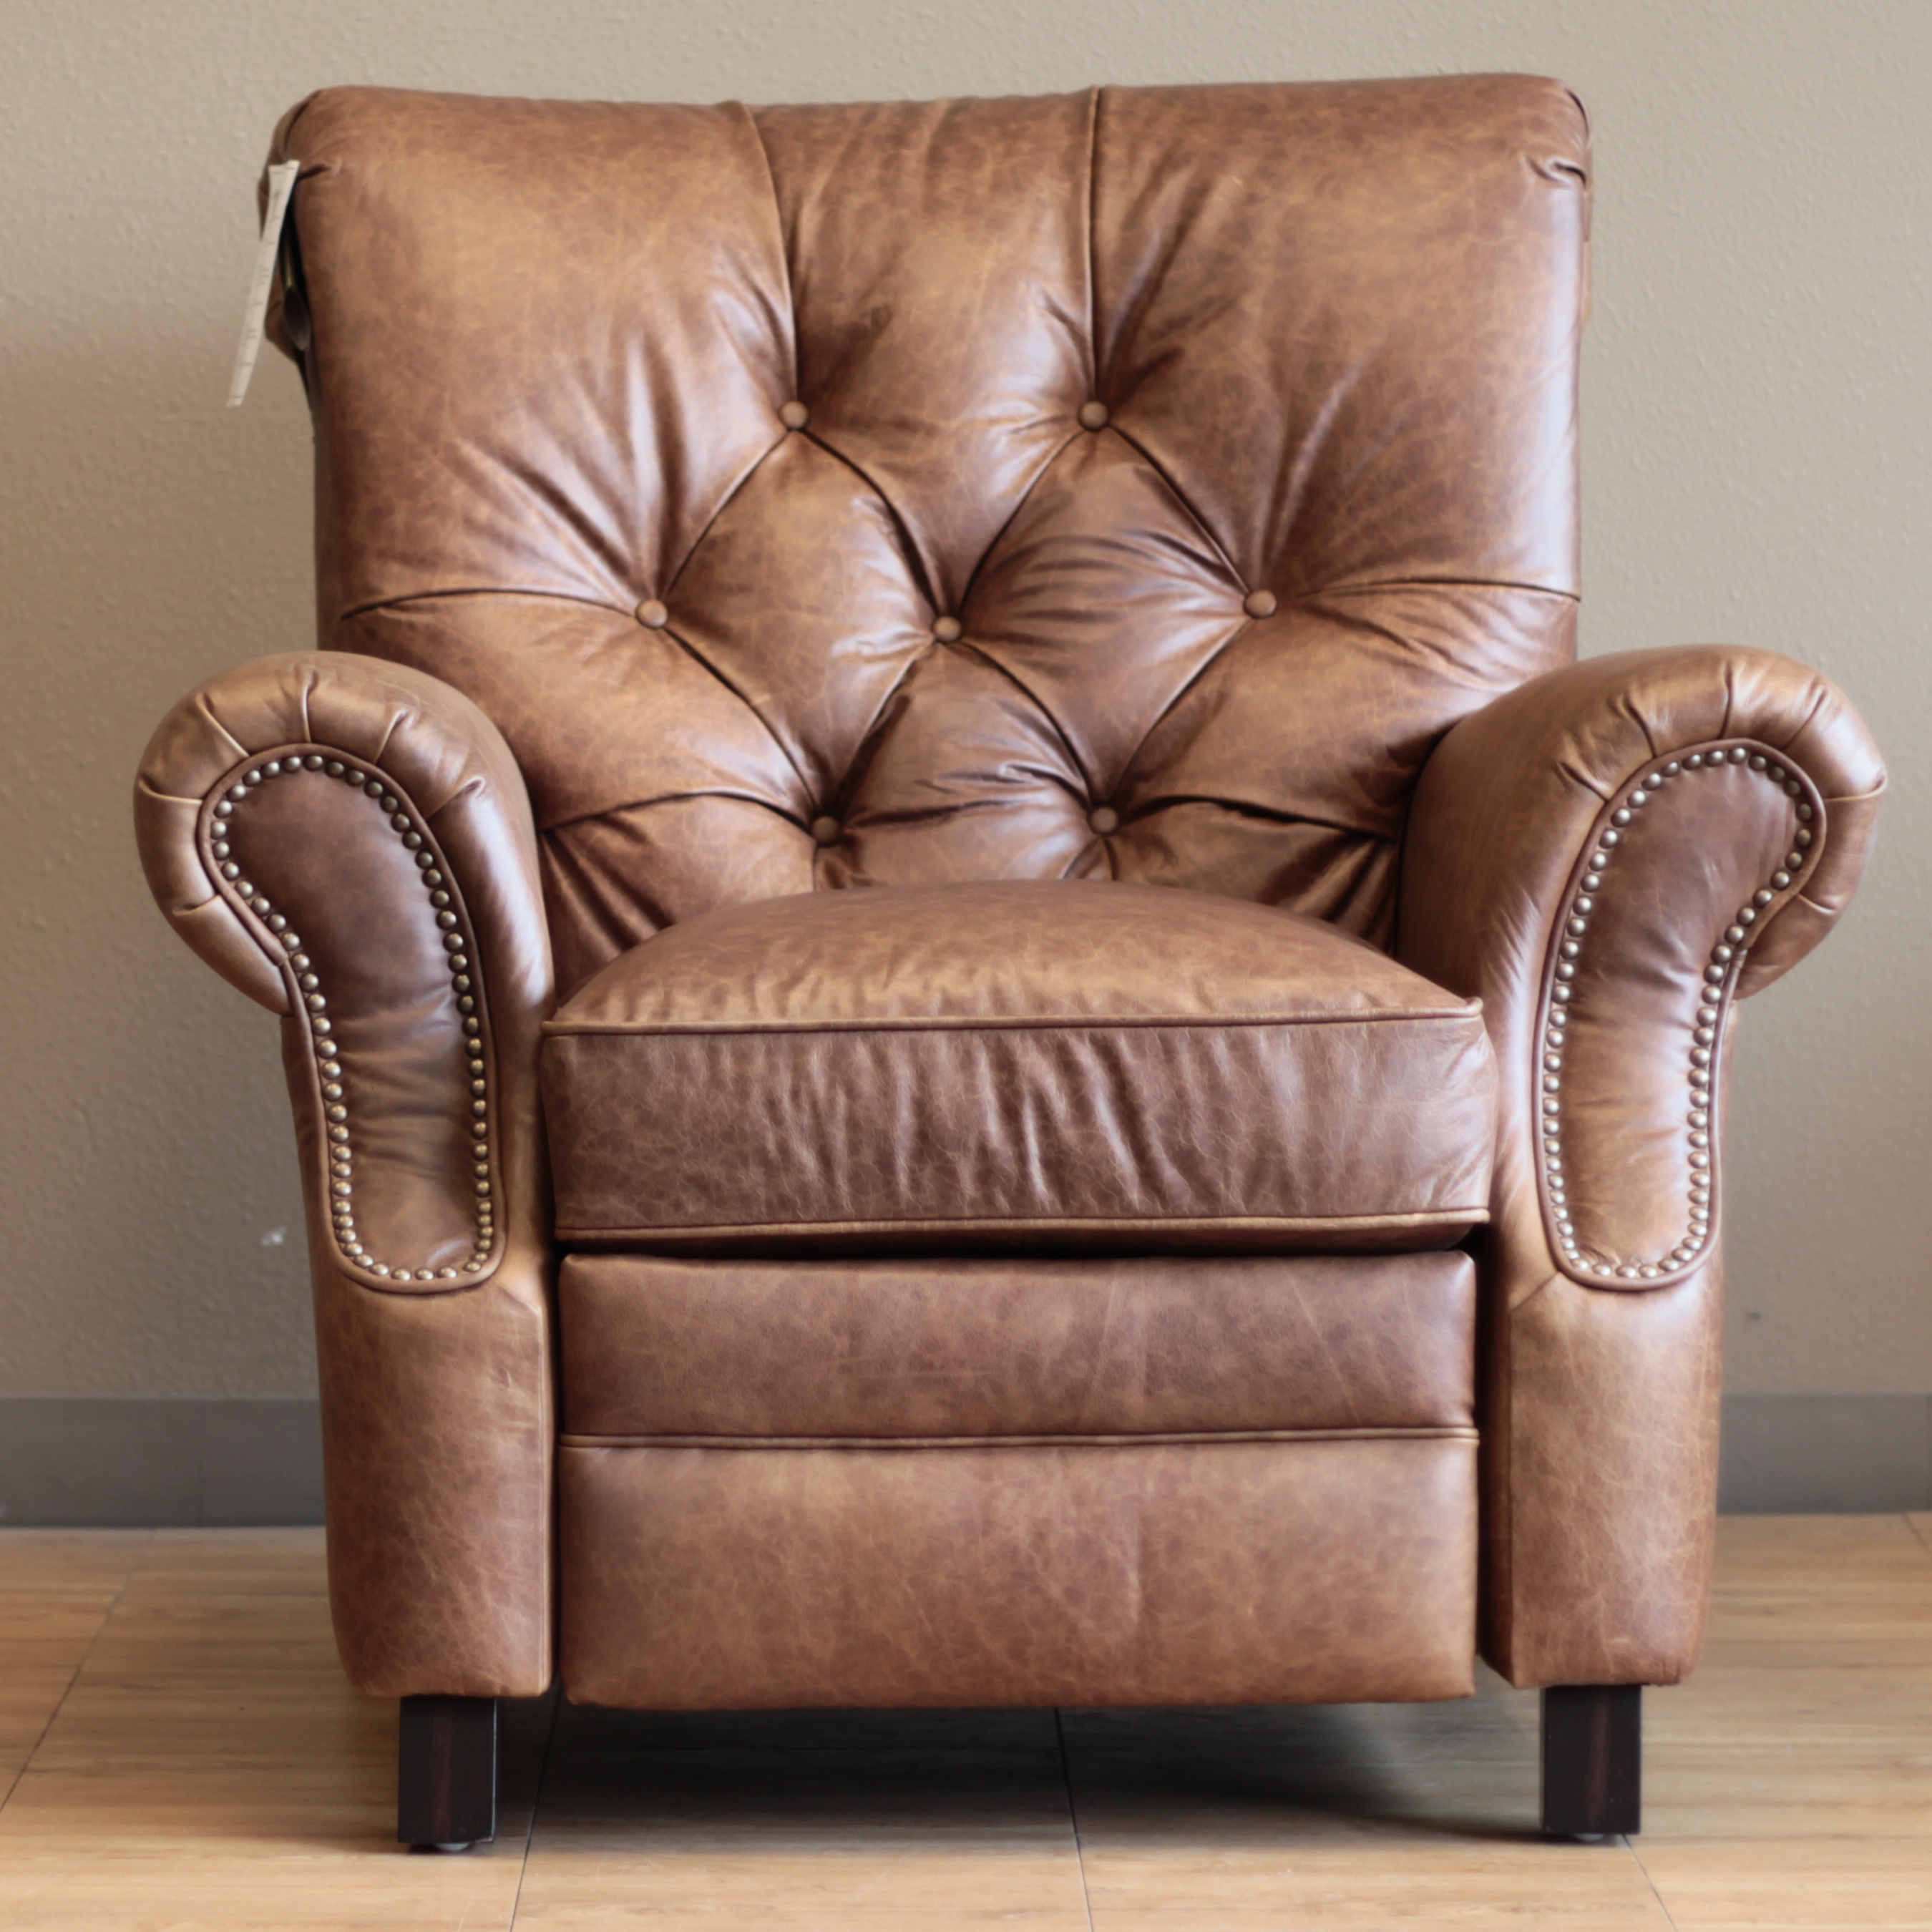 Barcalounger Phoenix Ii Recliner Chair Leather Recliner